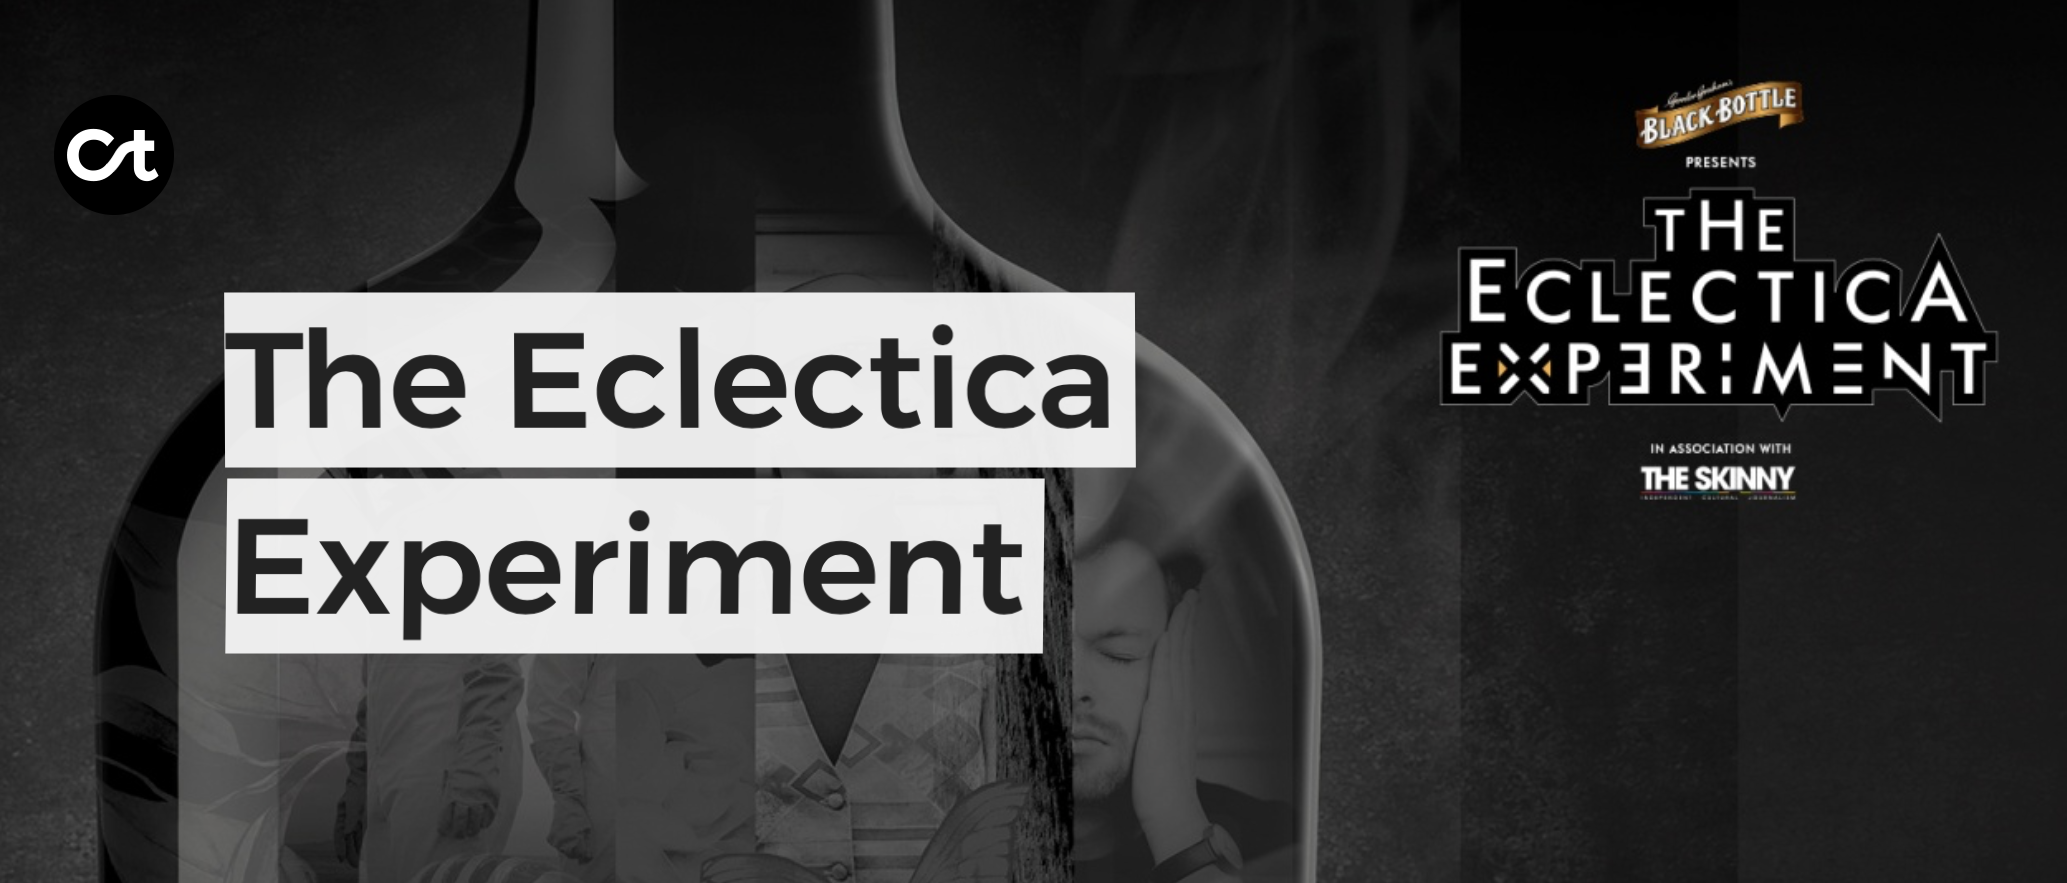 The Eclectica Experiment cover photo